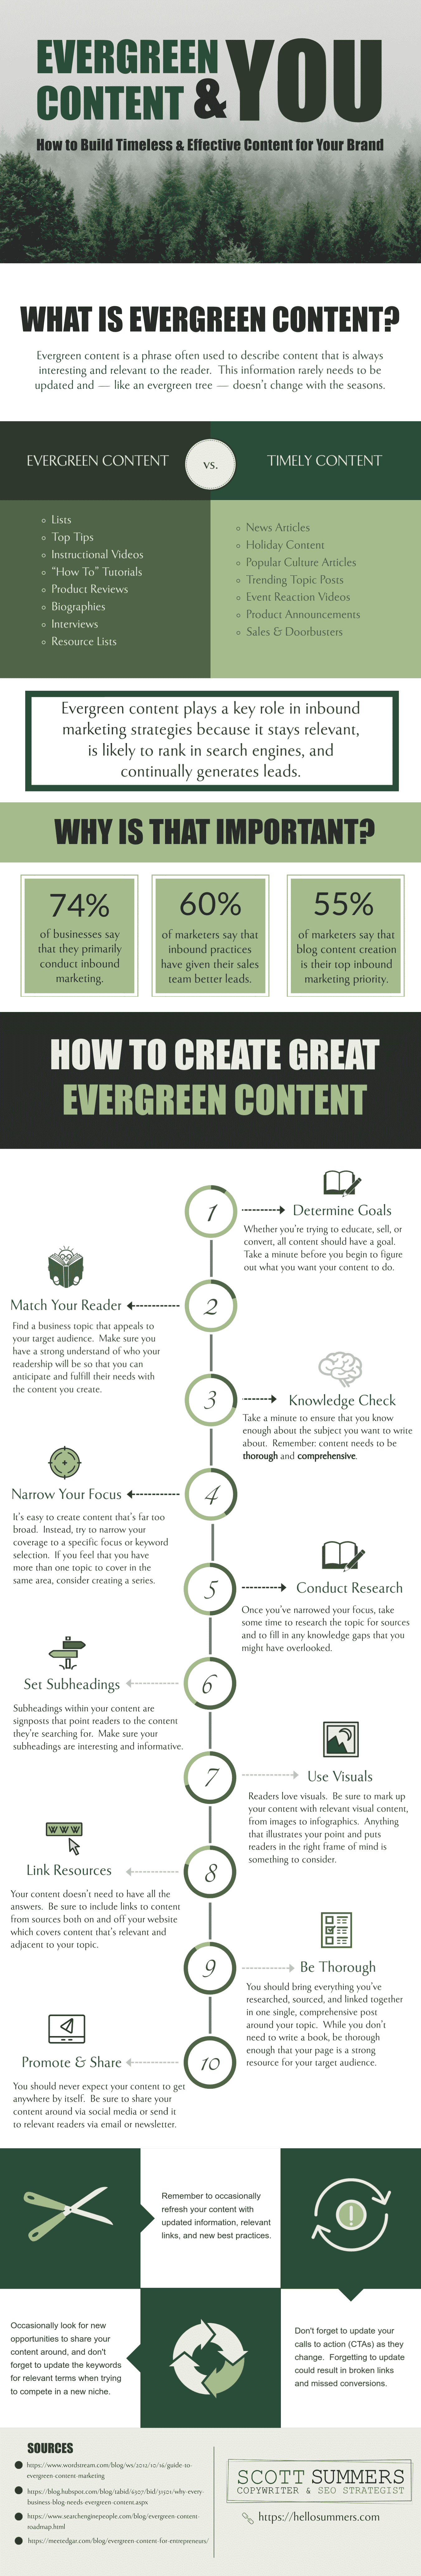 The Evergreen Content and You Infographic